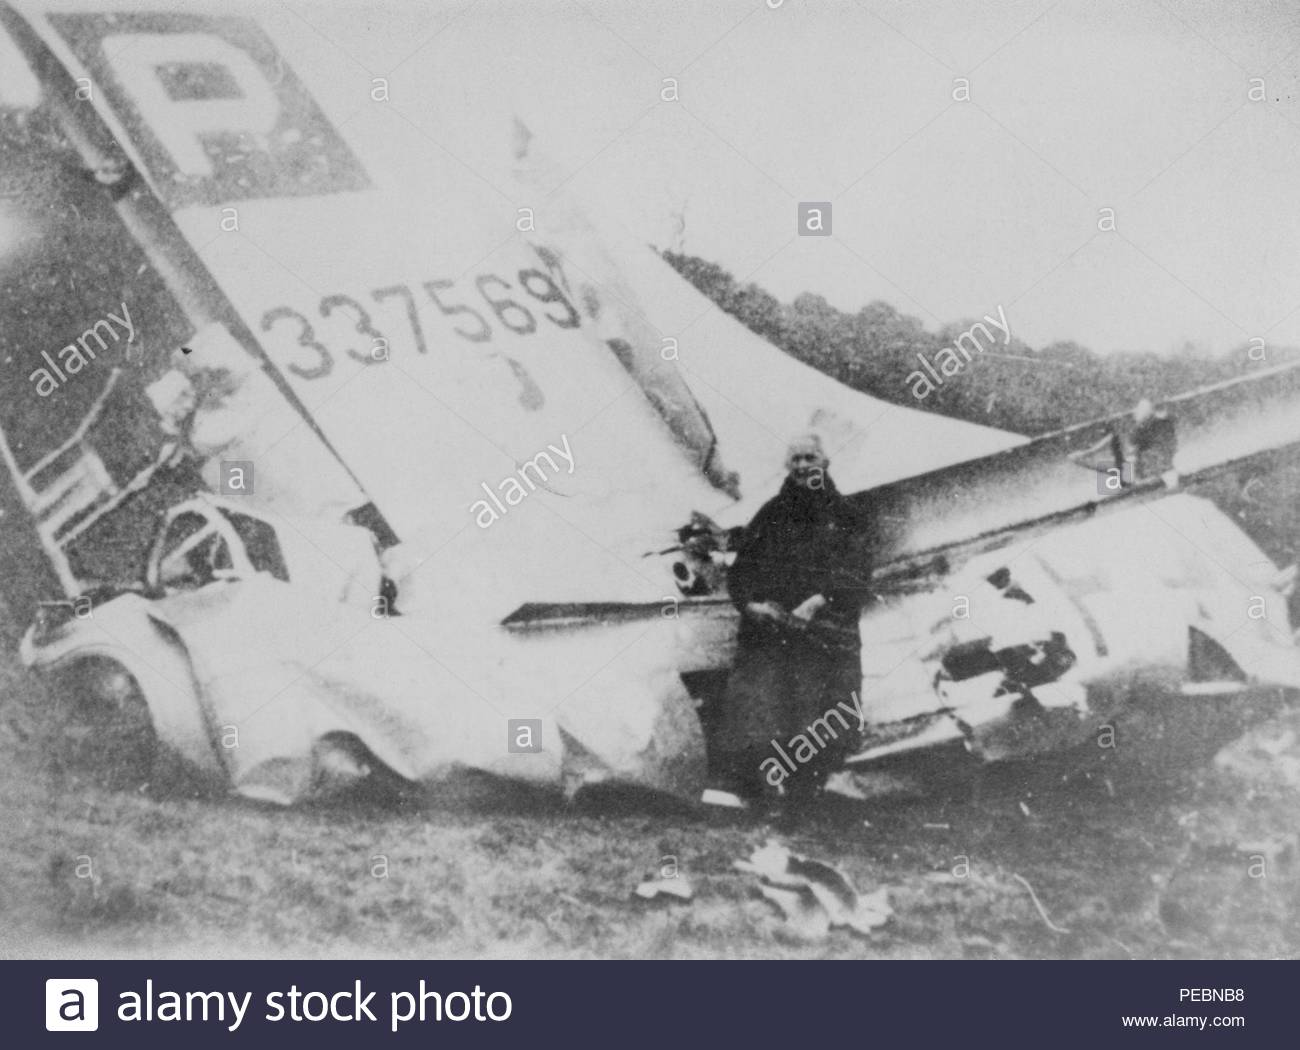 An unknown man poses in front of a downed B-17 Flying Fortress, tail number 4337569, following a dogfight which occurred, Dec. 24, 1944. The aircraft's crew included 1st Lt. Vernal Cuno Becker, the tail gunner on the mission, and great-uncle of current U.S. Air Force Chief Master Sgt. James McCloskey. (Courtesy photo) Stock Photo